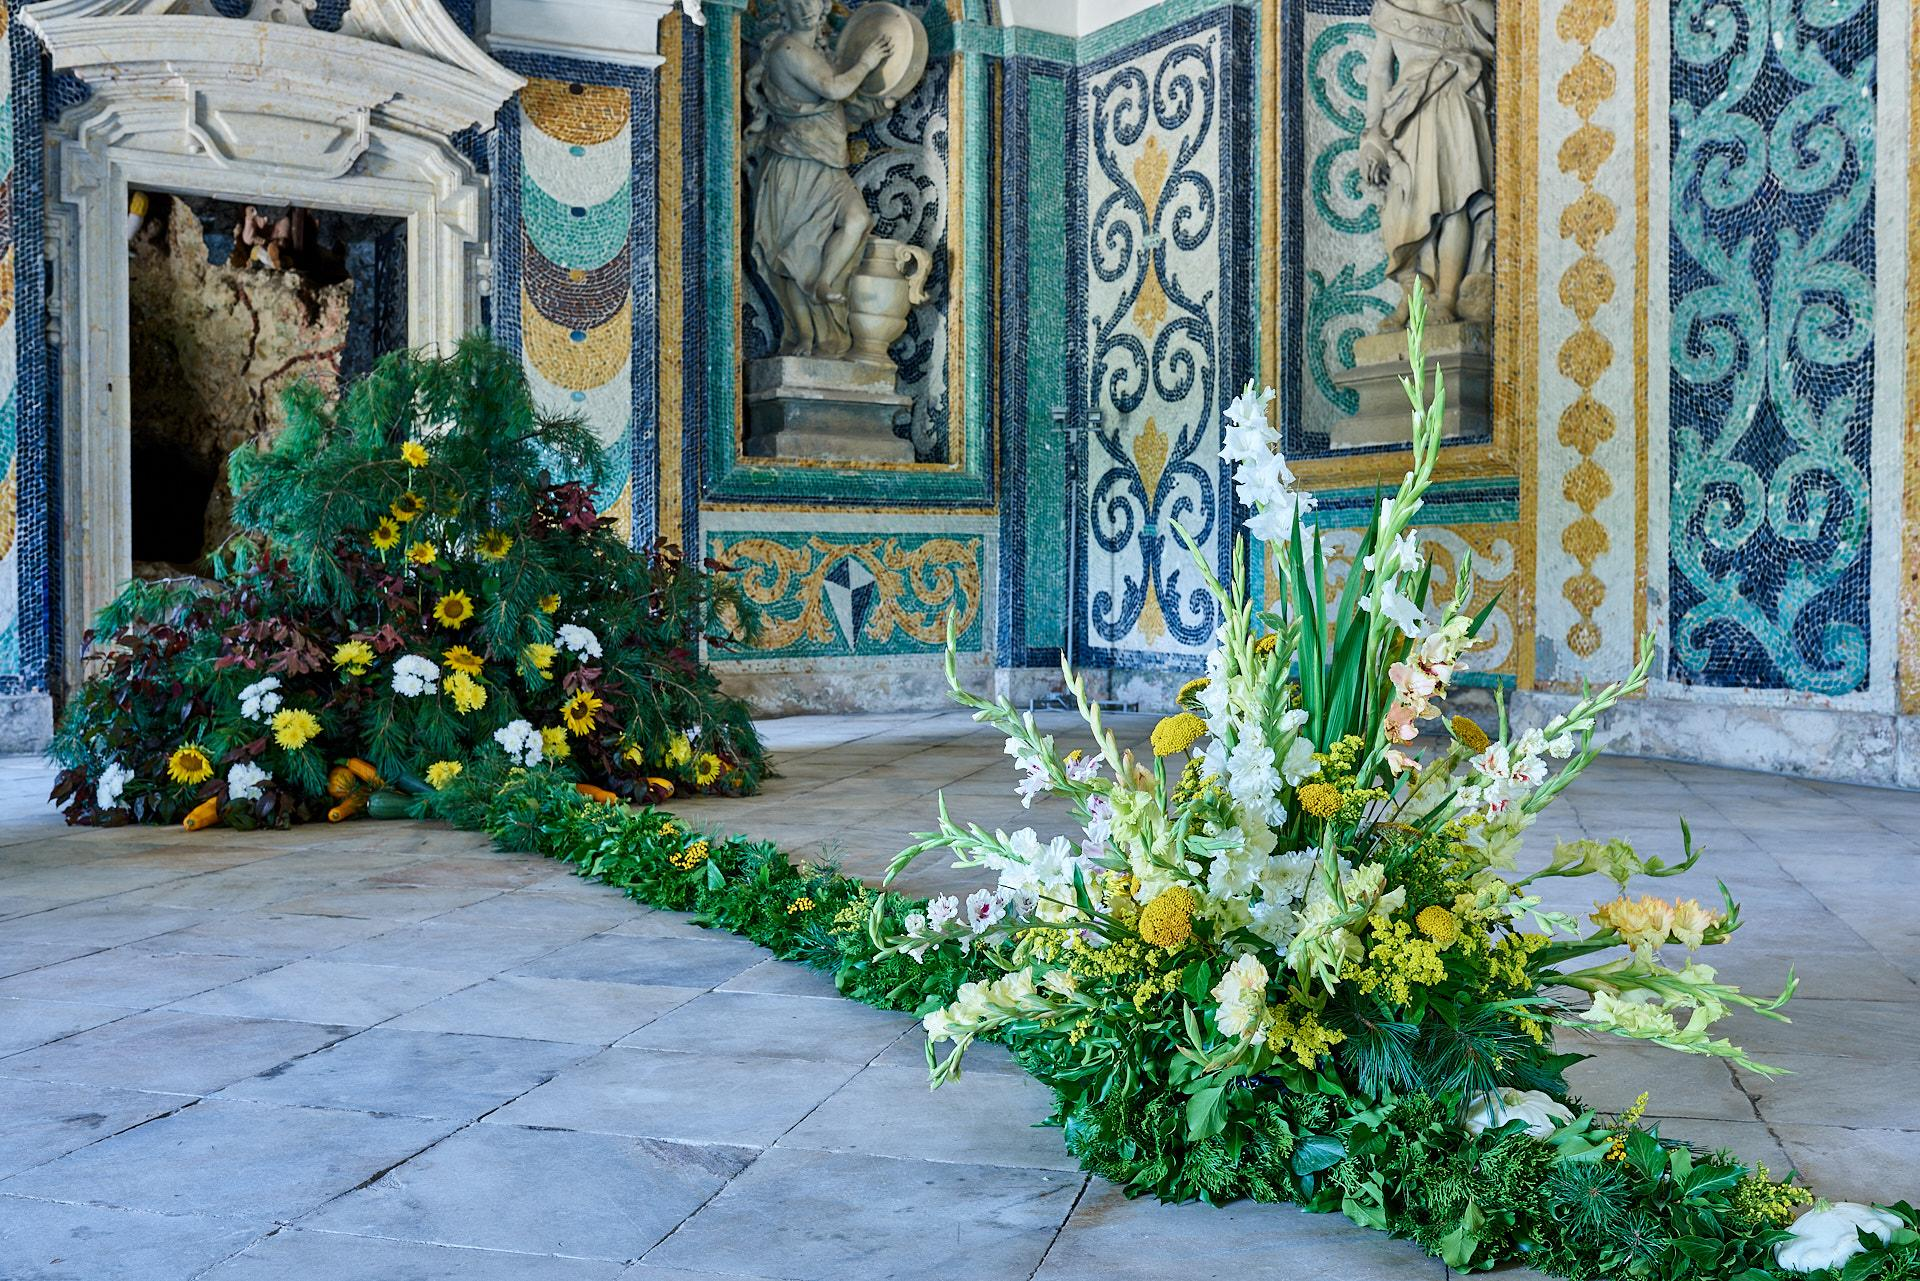 During the busy season there are also floral arrangements and decorations which are changed almost every week. This one represents winter and fall as well as the whole room. -© Archive of the Archiepiscopal Castle Kroměříž